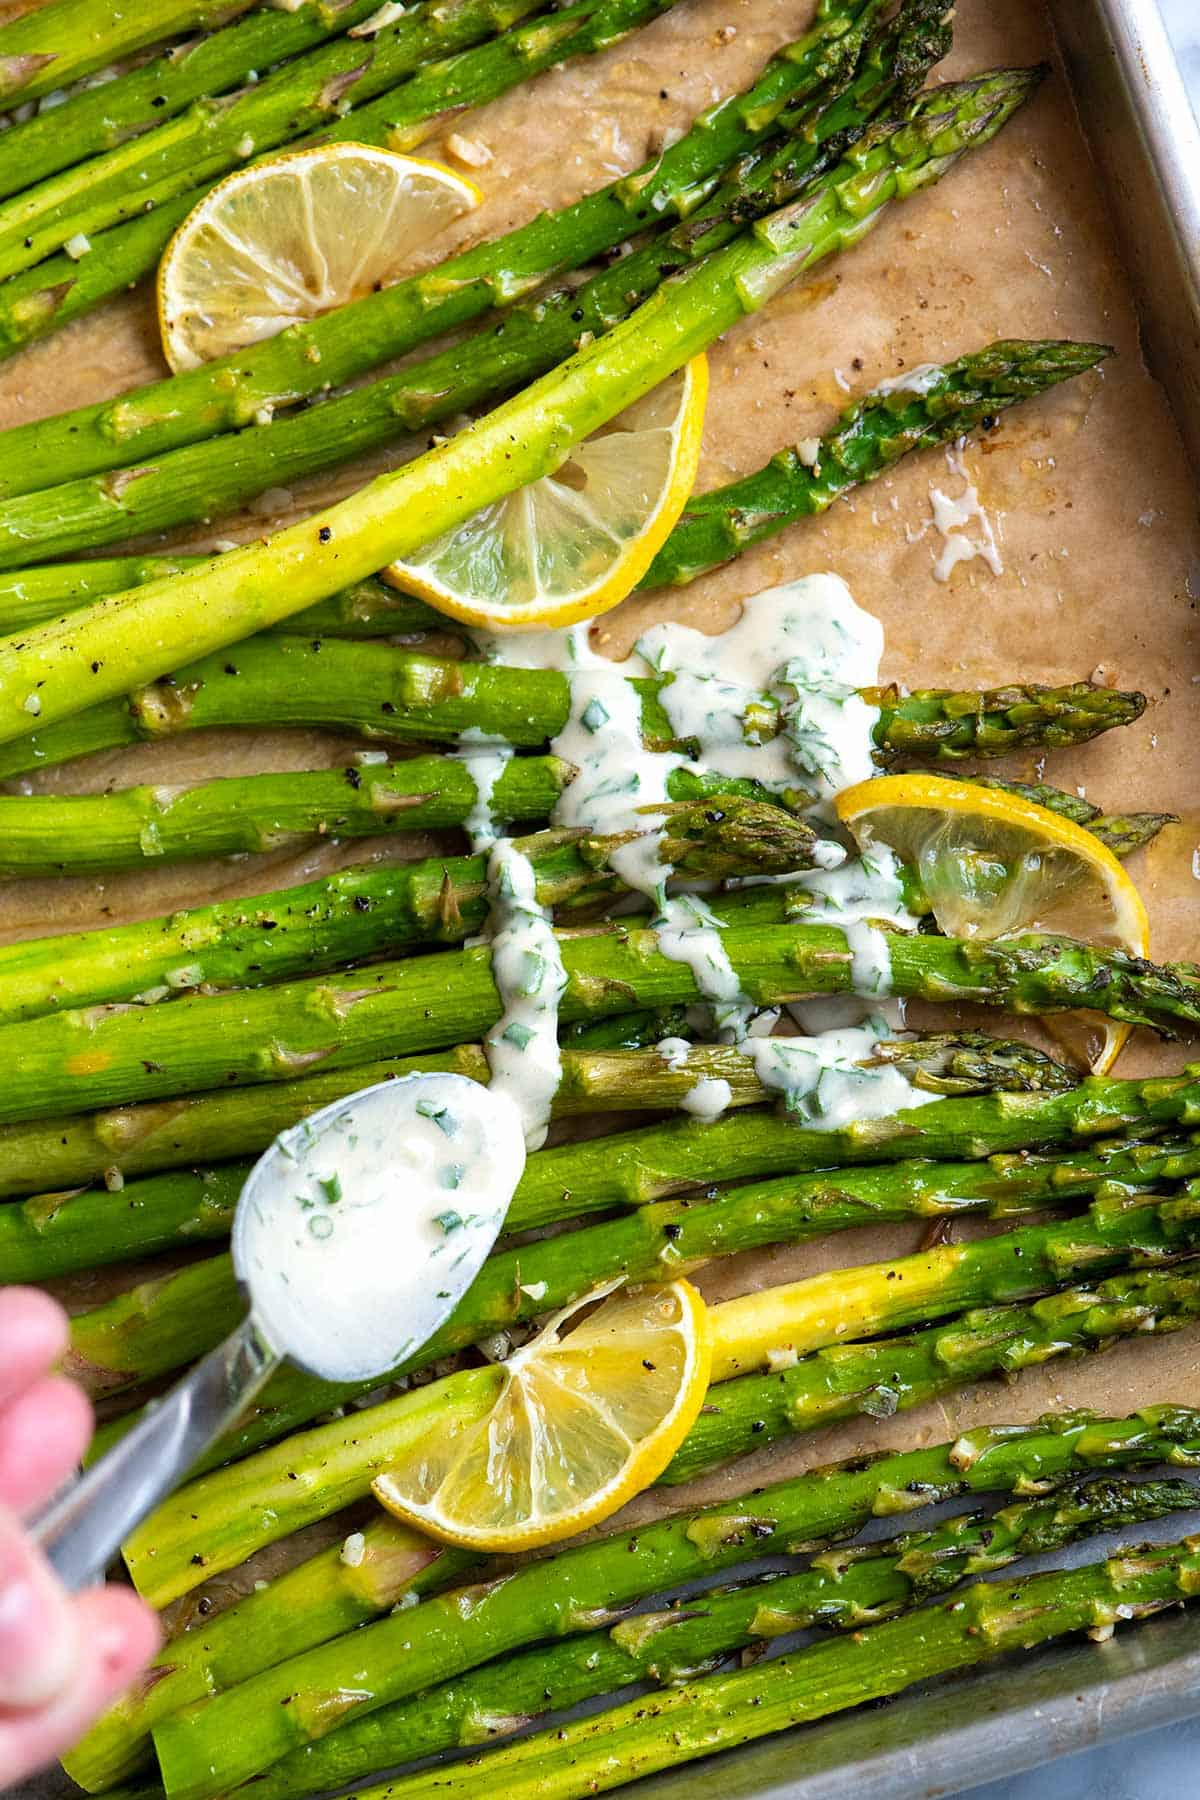 This roasted asparagus is a simple, fast side dish. The asparagus is perfectly tender with slightly crispy tips.  Served with our five minute garlic herb sauce, it's deliciously garlicky, fresh, and vegetarian.